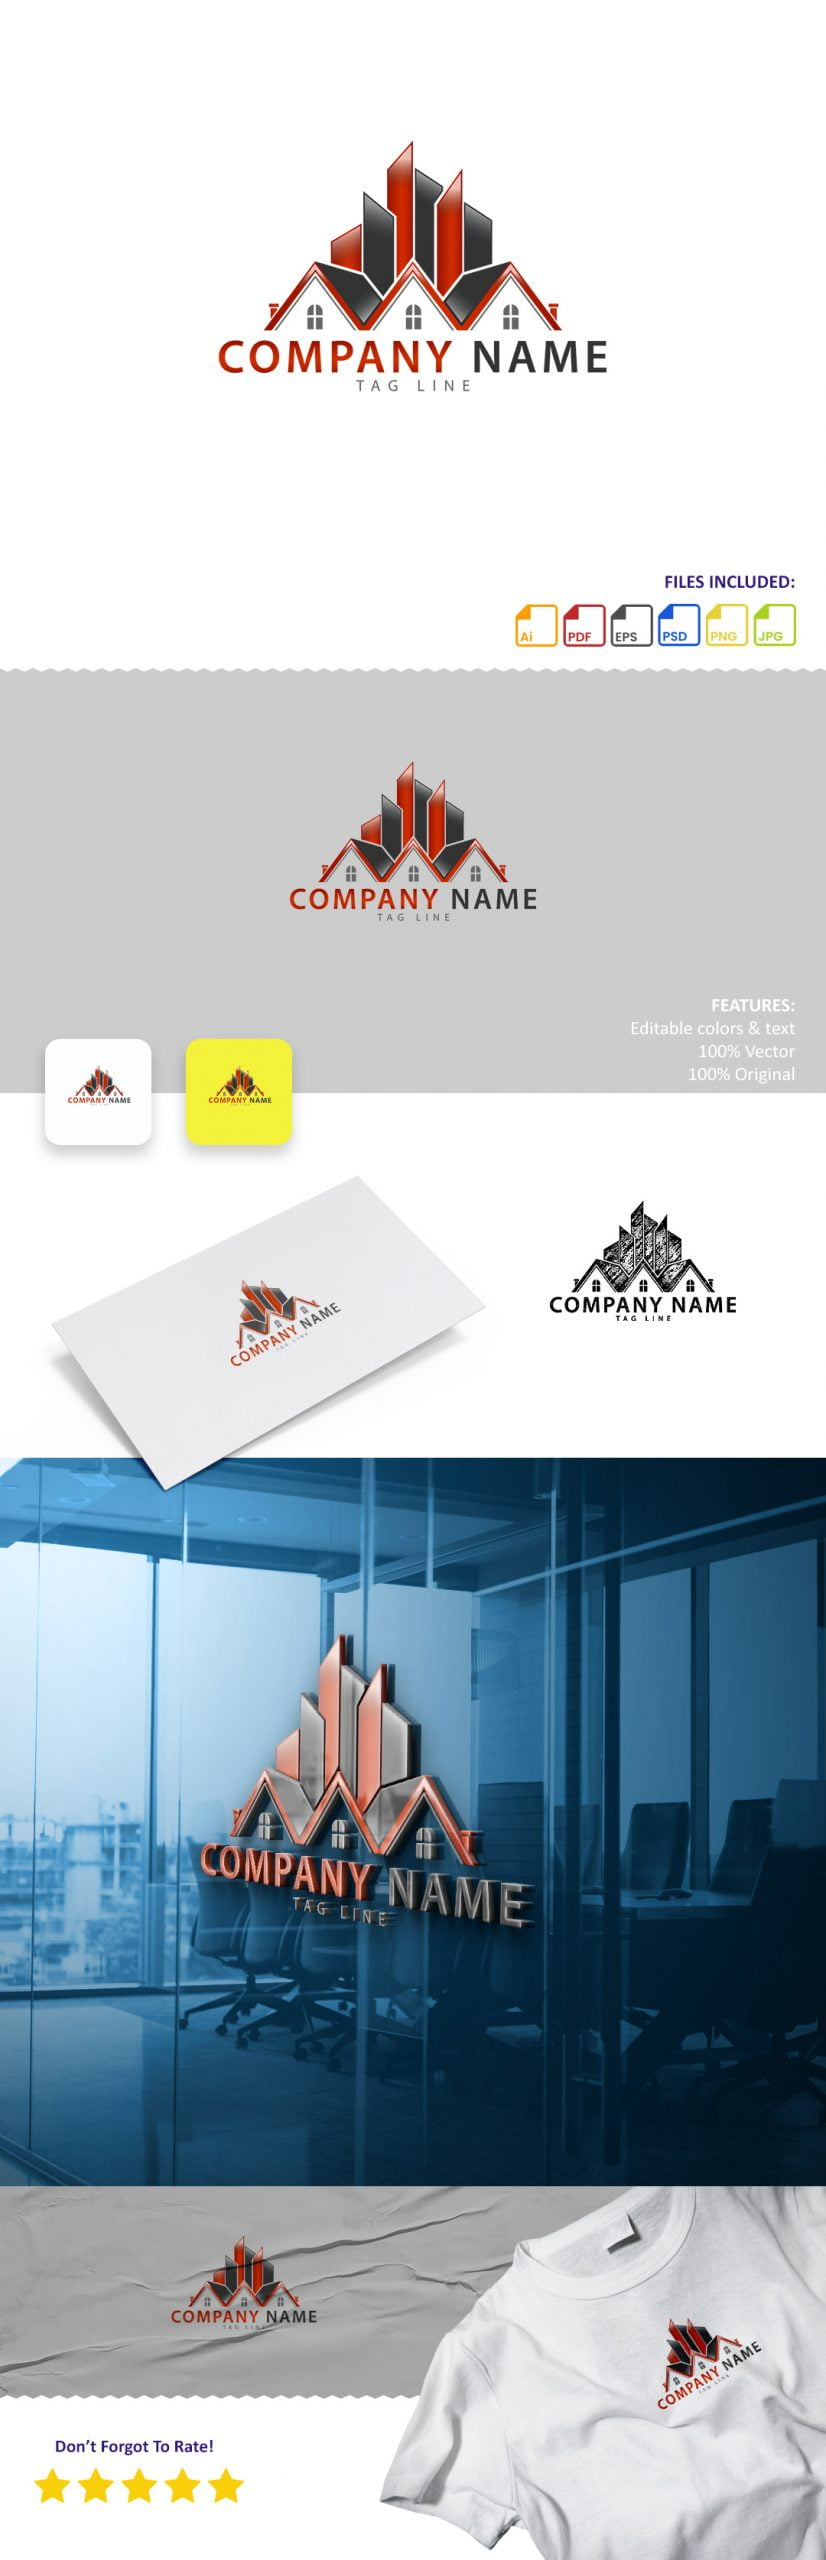 Free-Download-Logo-Preview-Image-Generator-by-GraphicsFamily